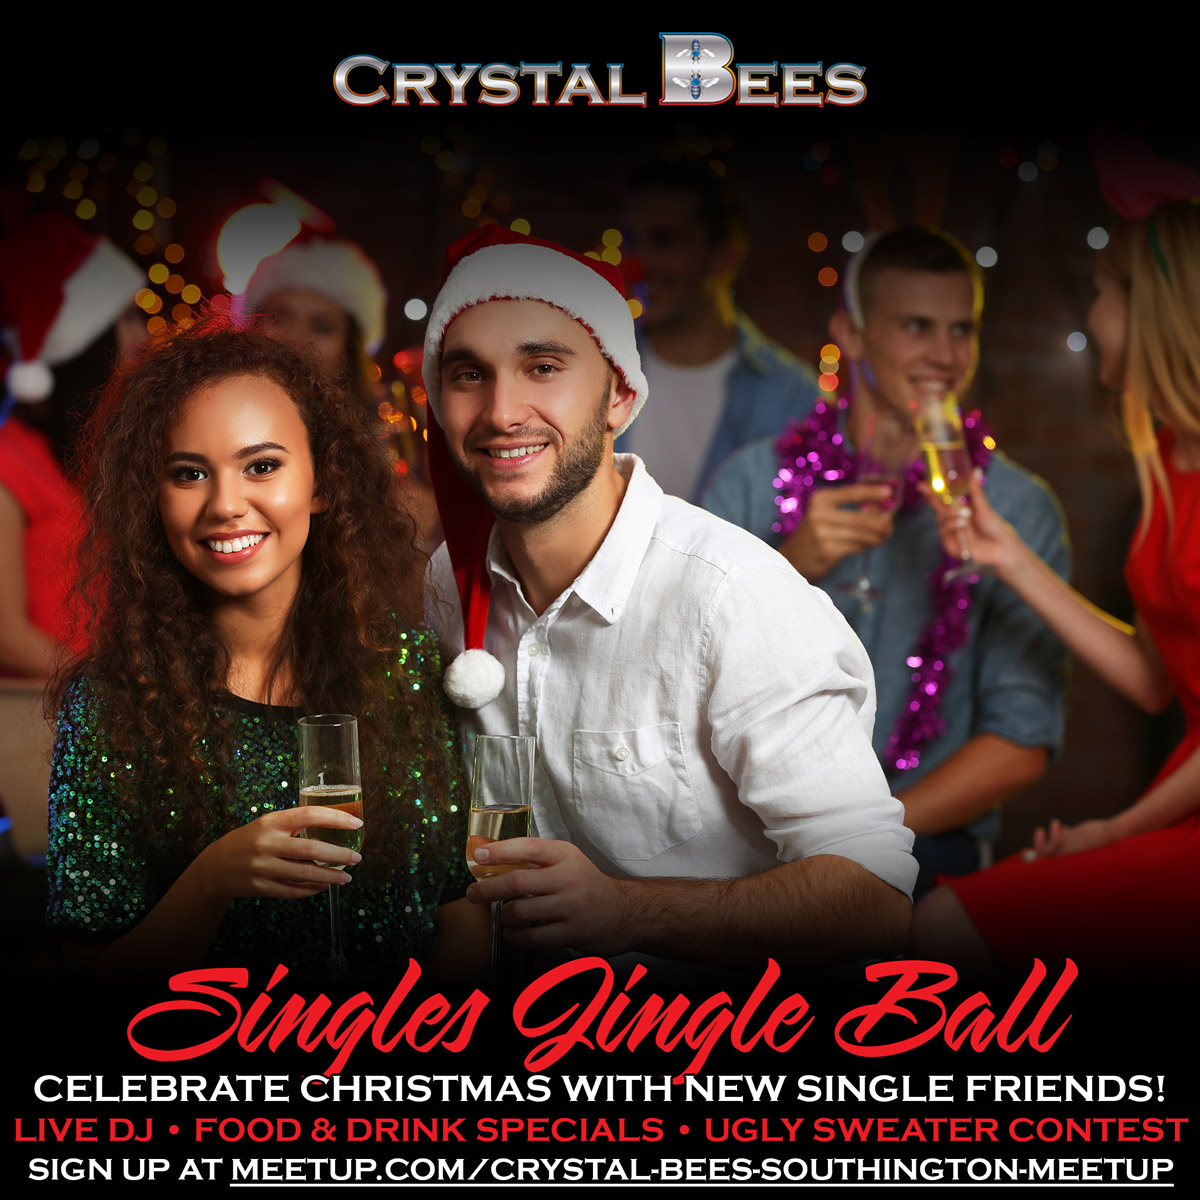 Singles Jingle Ball